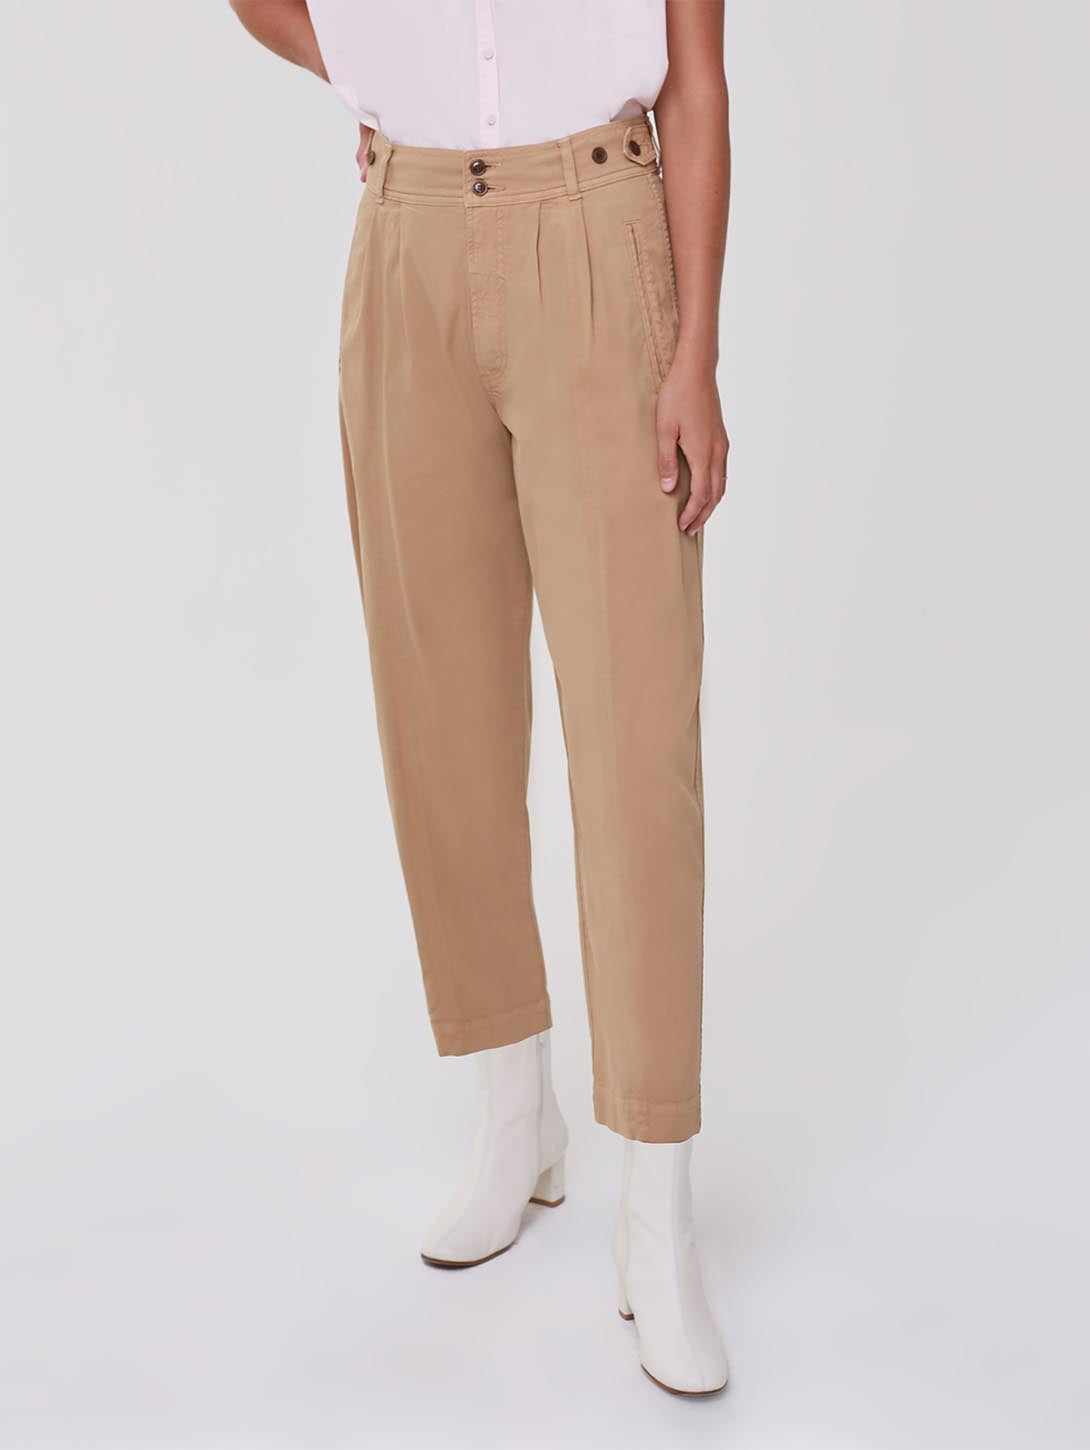 Leona Pleated Pant-Citizens of Humanity-Over the Rainbow